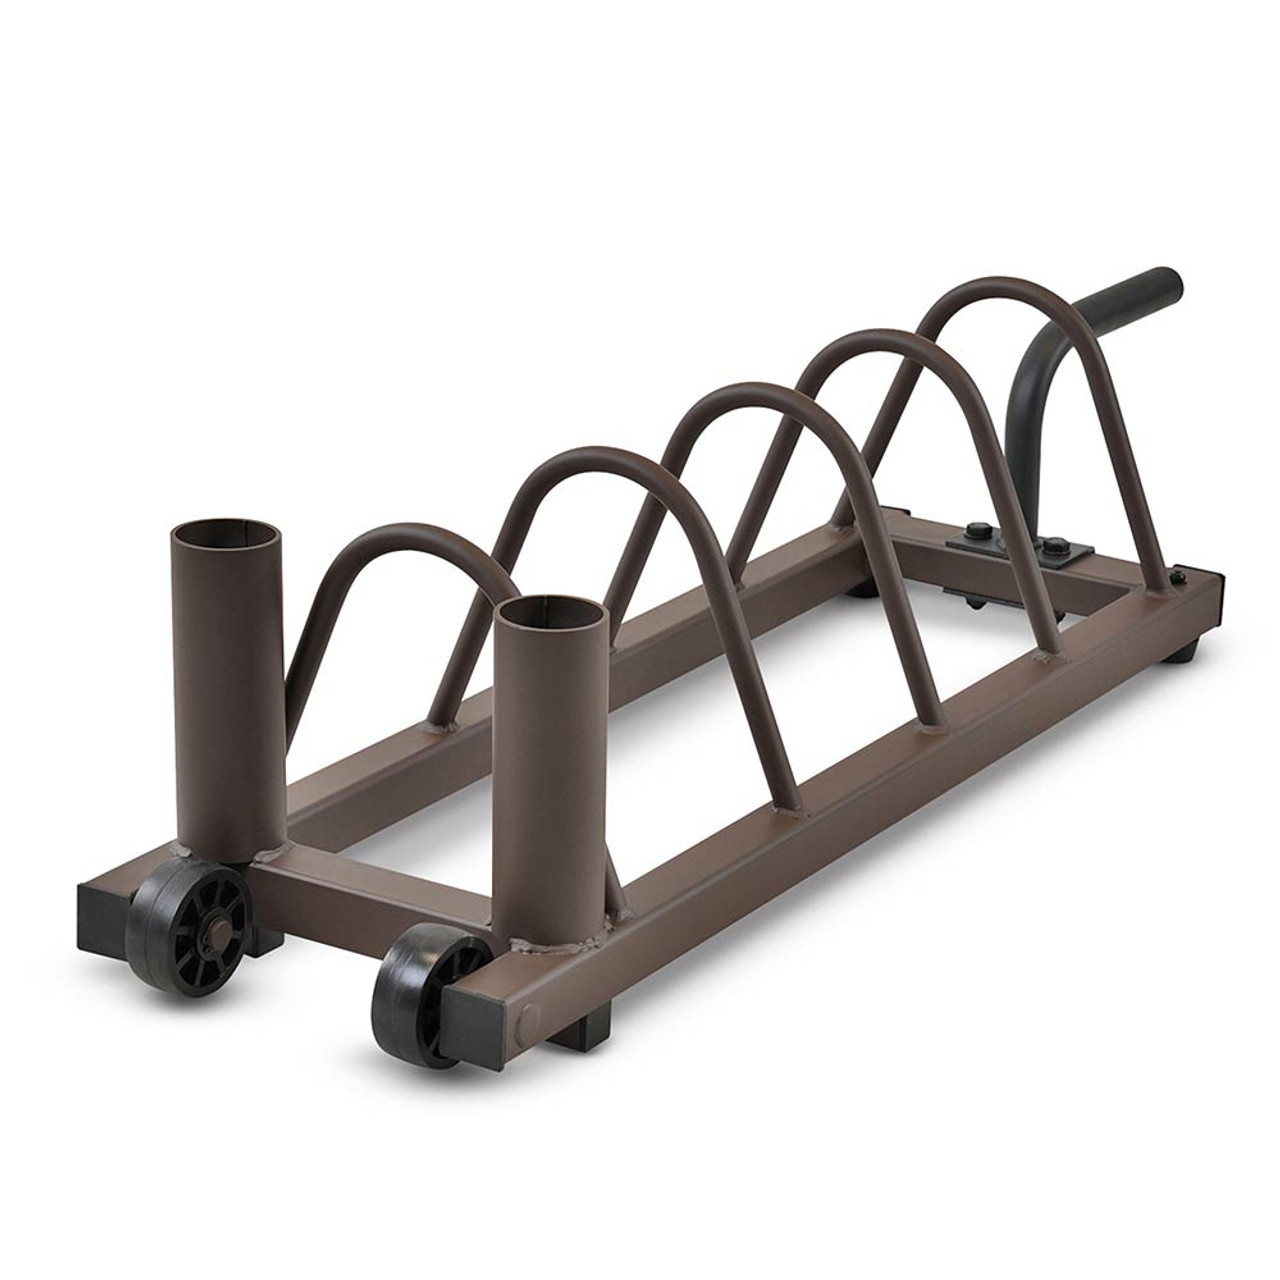 Horizontal Plate Rack SteelBody STB-0130 conveniently stores your olympic and standard plates  sc 1 st  Marcy Pro & Horizontal Plate Rack | SteelBody STB-0130 Durable Heavy Duty Weight ...